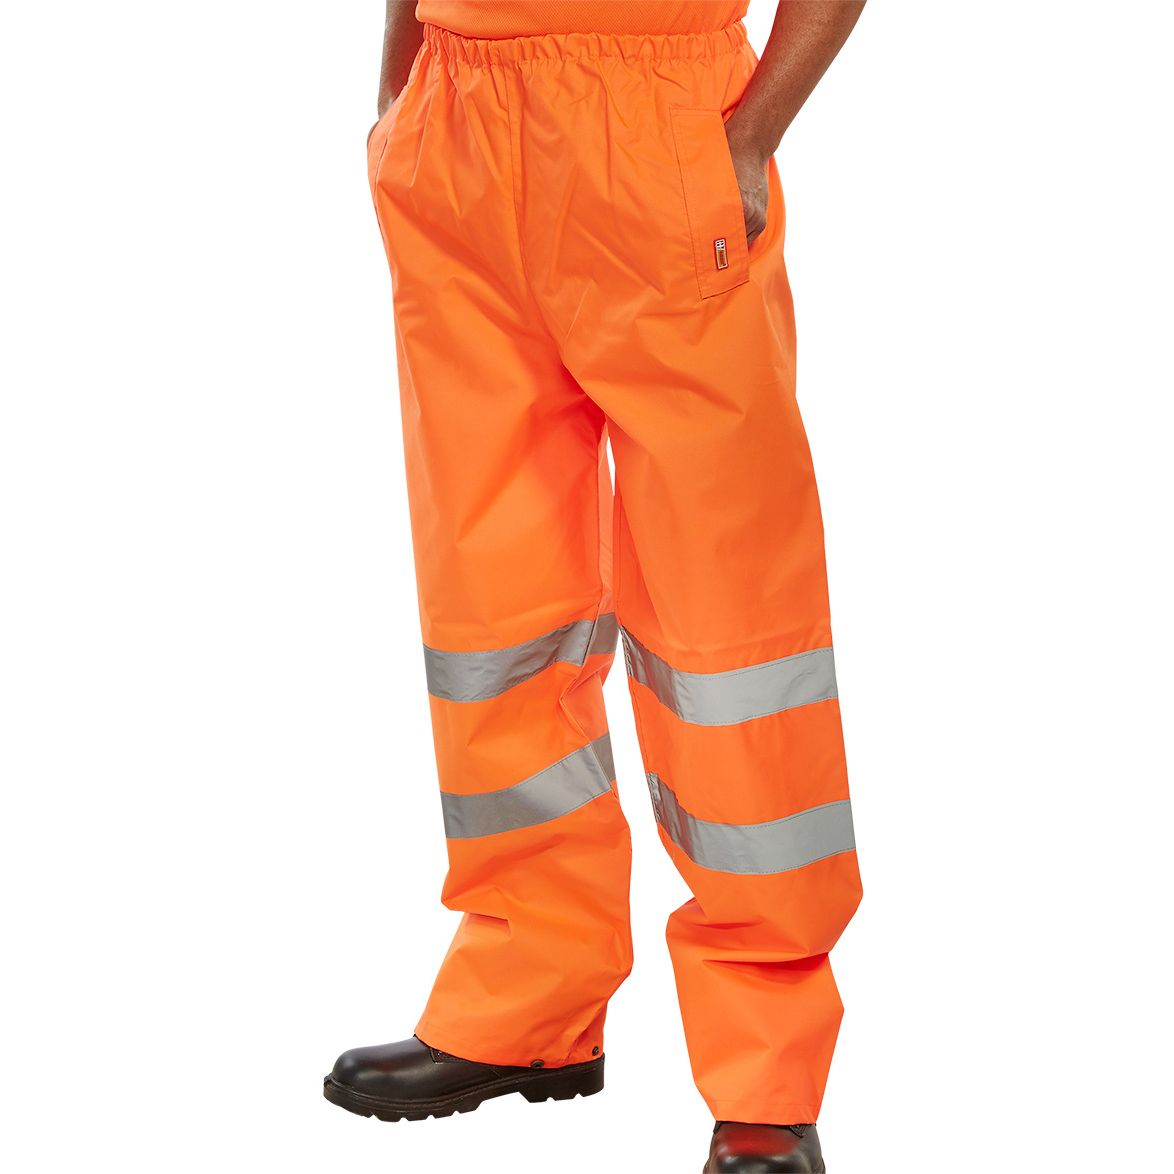 Ladies BSeen Traffic Trousers Hi-Vis Reflective Tape Medium Orange Ref TENORM *Up to 3 Day Leadtime*